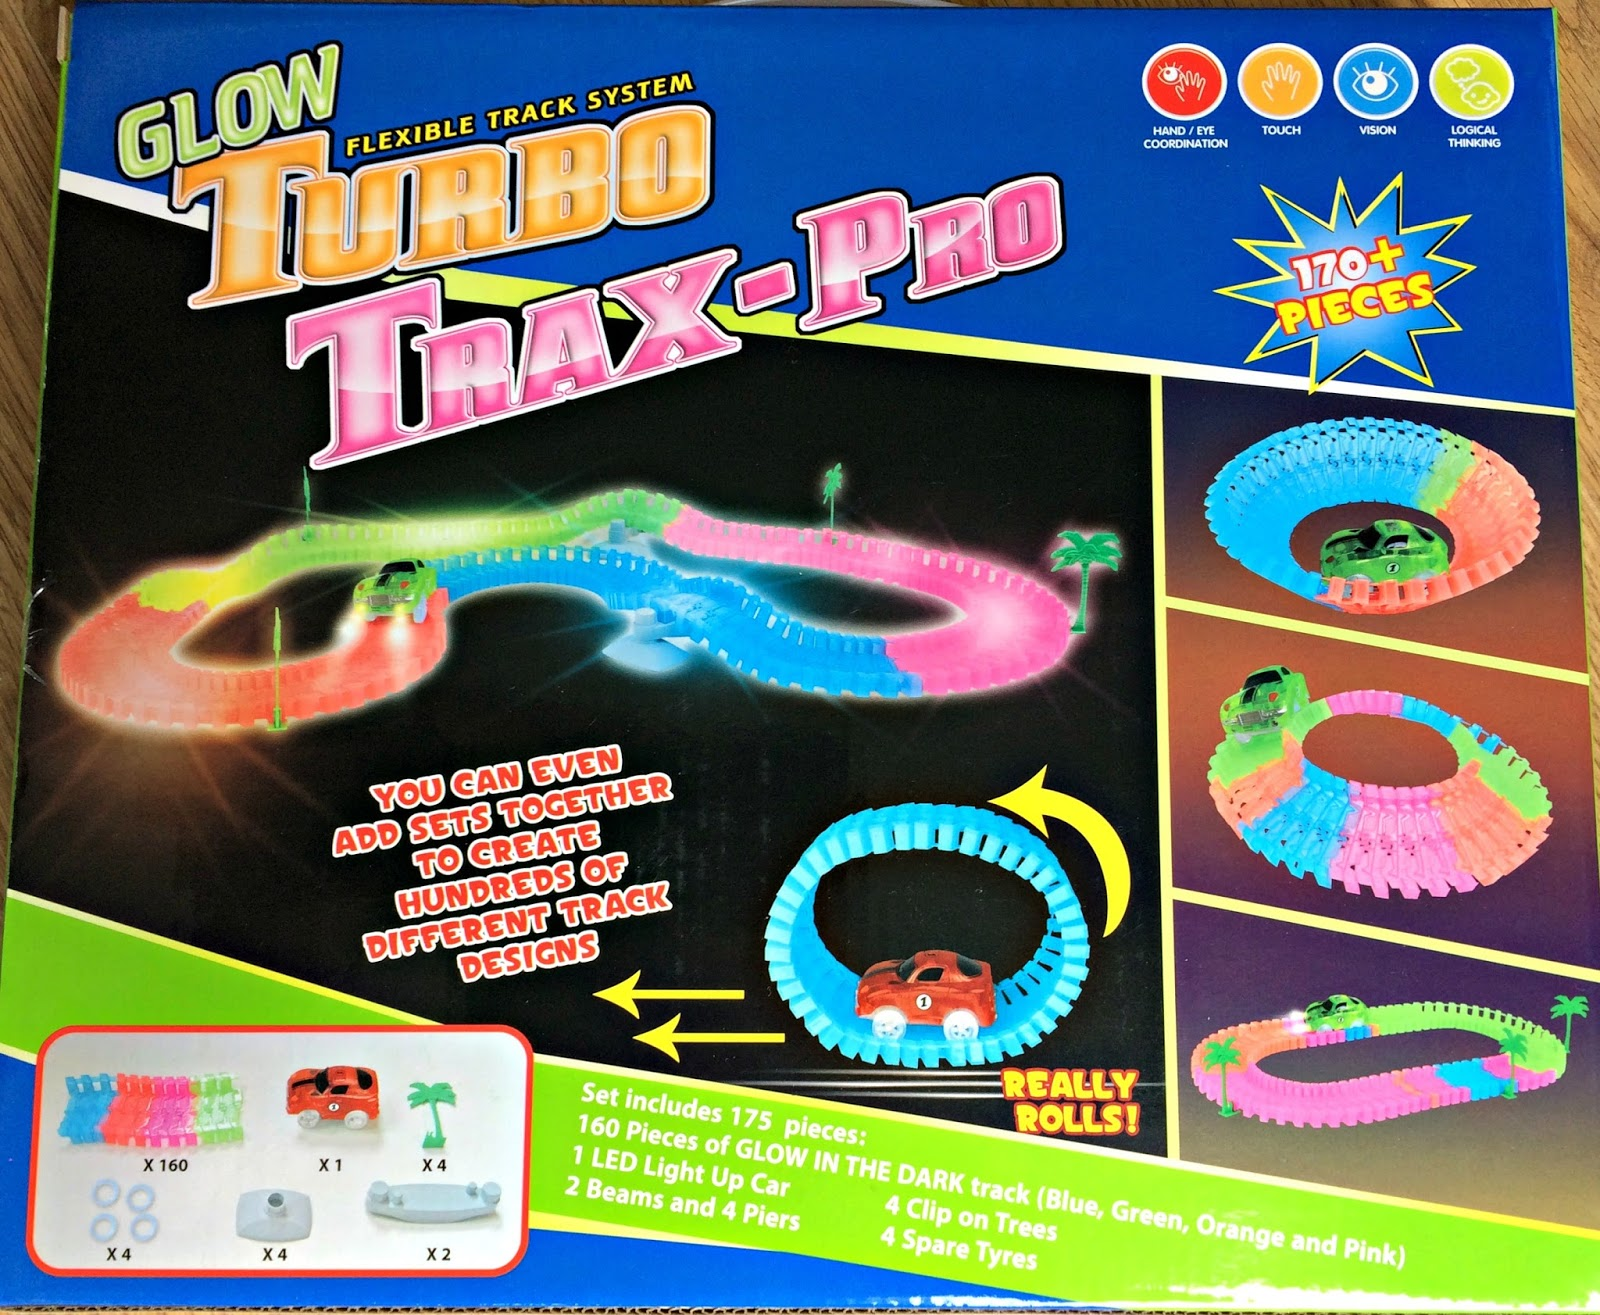 Turbo Trax-Pro box showing different track layouts